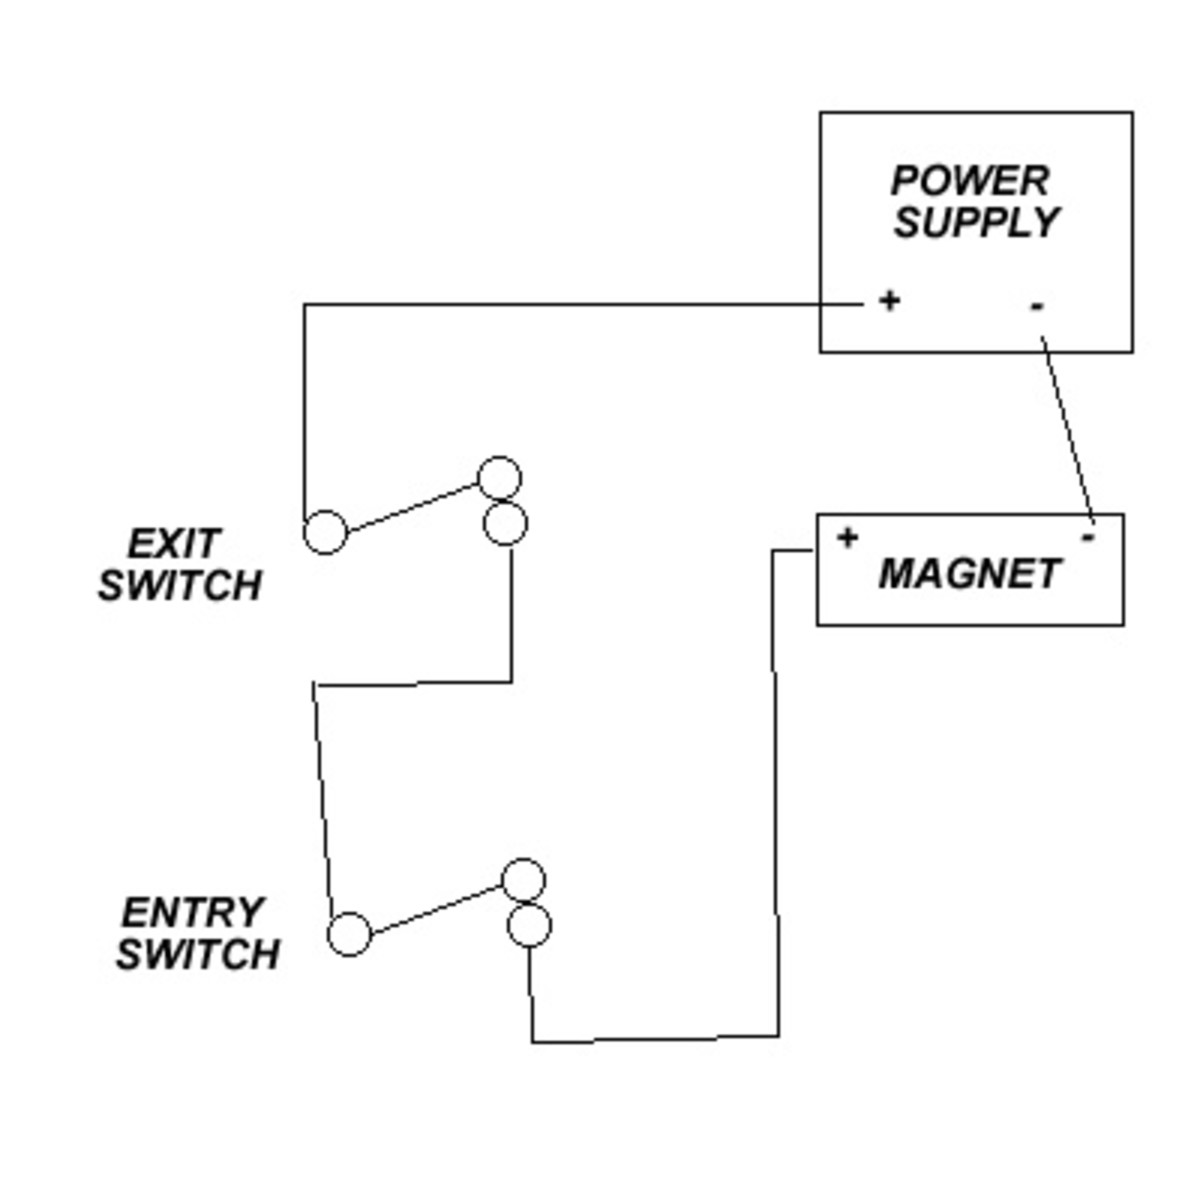 Adams Rite 8600 Wiring Diagram also Wiring Diagram For Inter  System furthermore Wiring Diagram For Inter  System furthermore Garage Door Opener Metal as well Lcn 9542 Wiring Diagram. on wiring diagram electric door strike